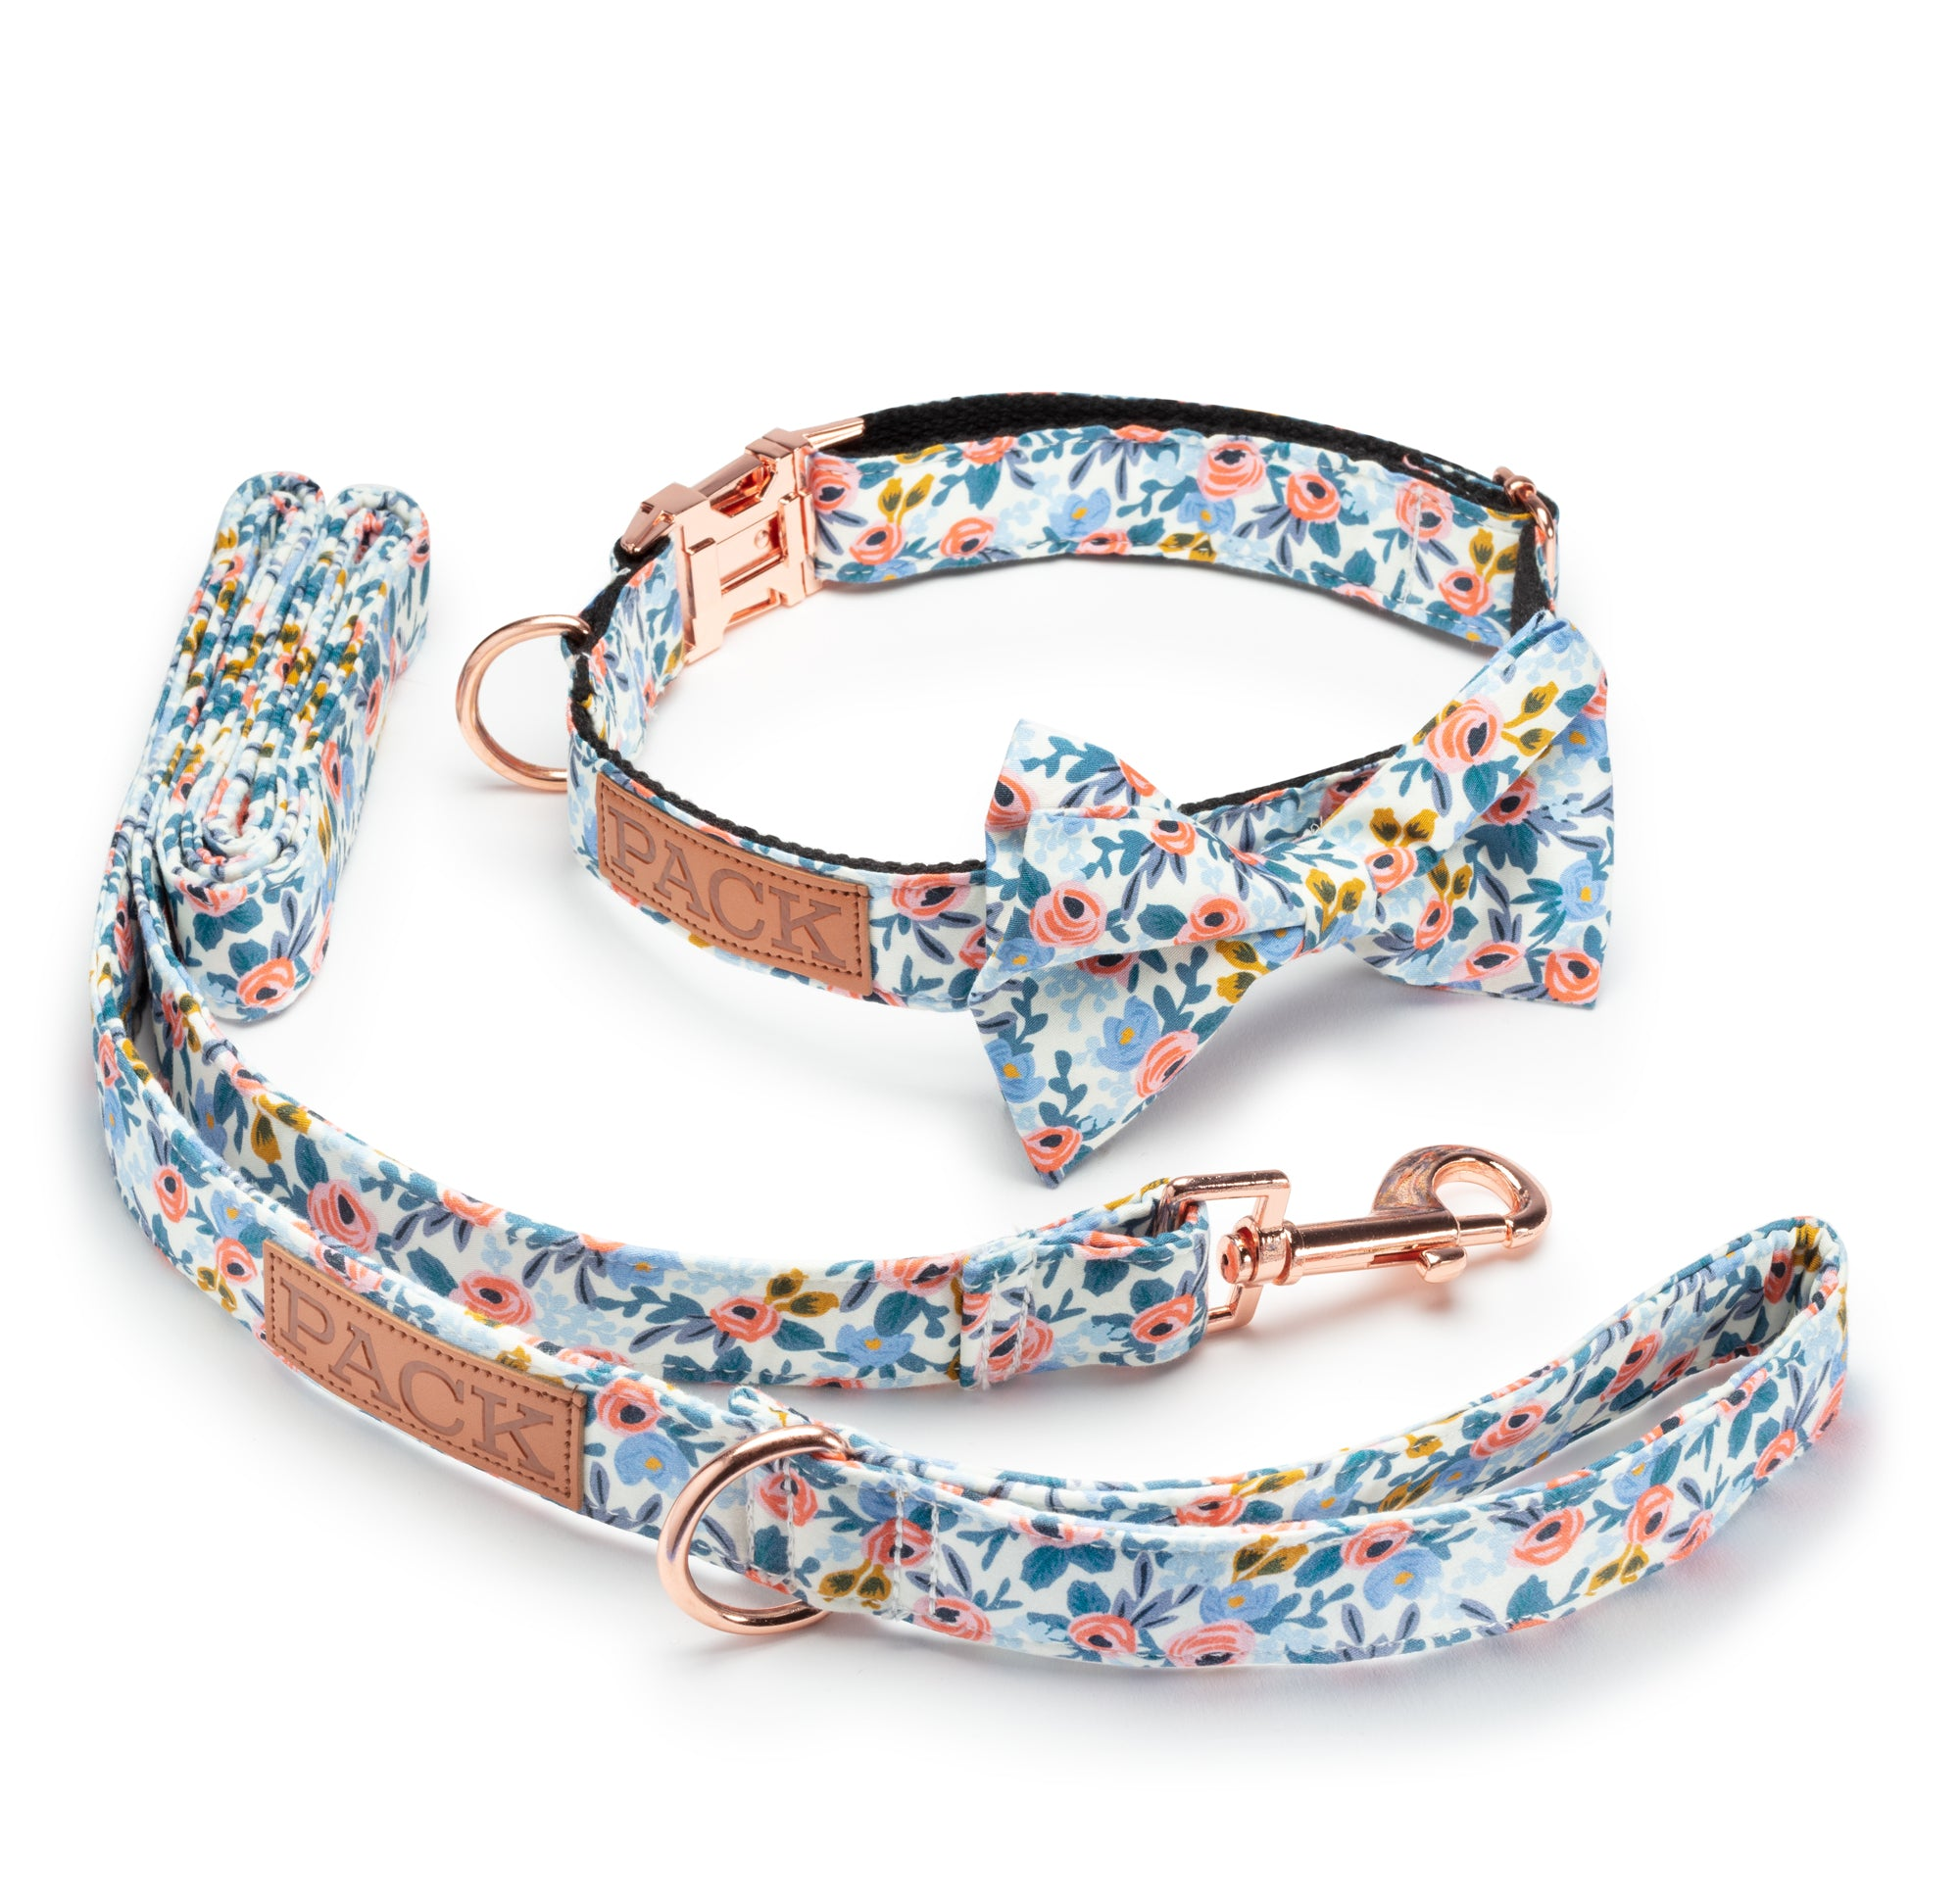 Rosé Leash + Bowtie Collar